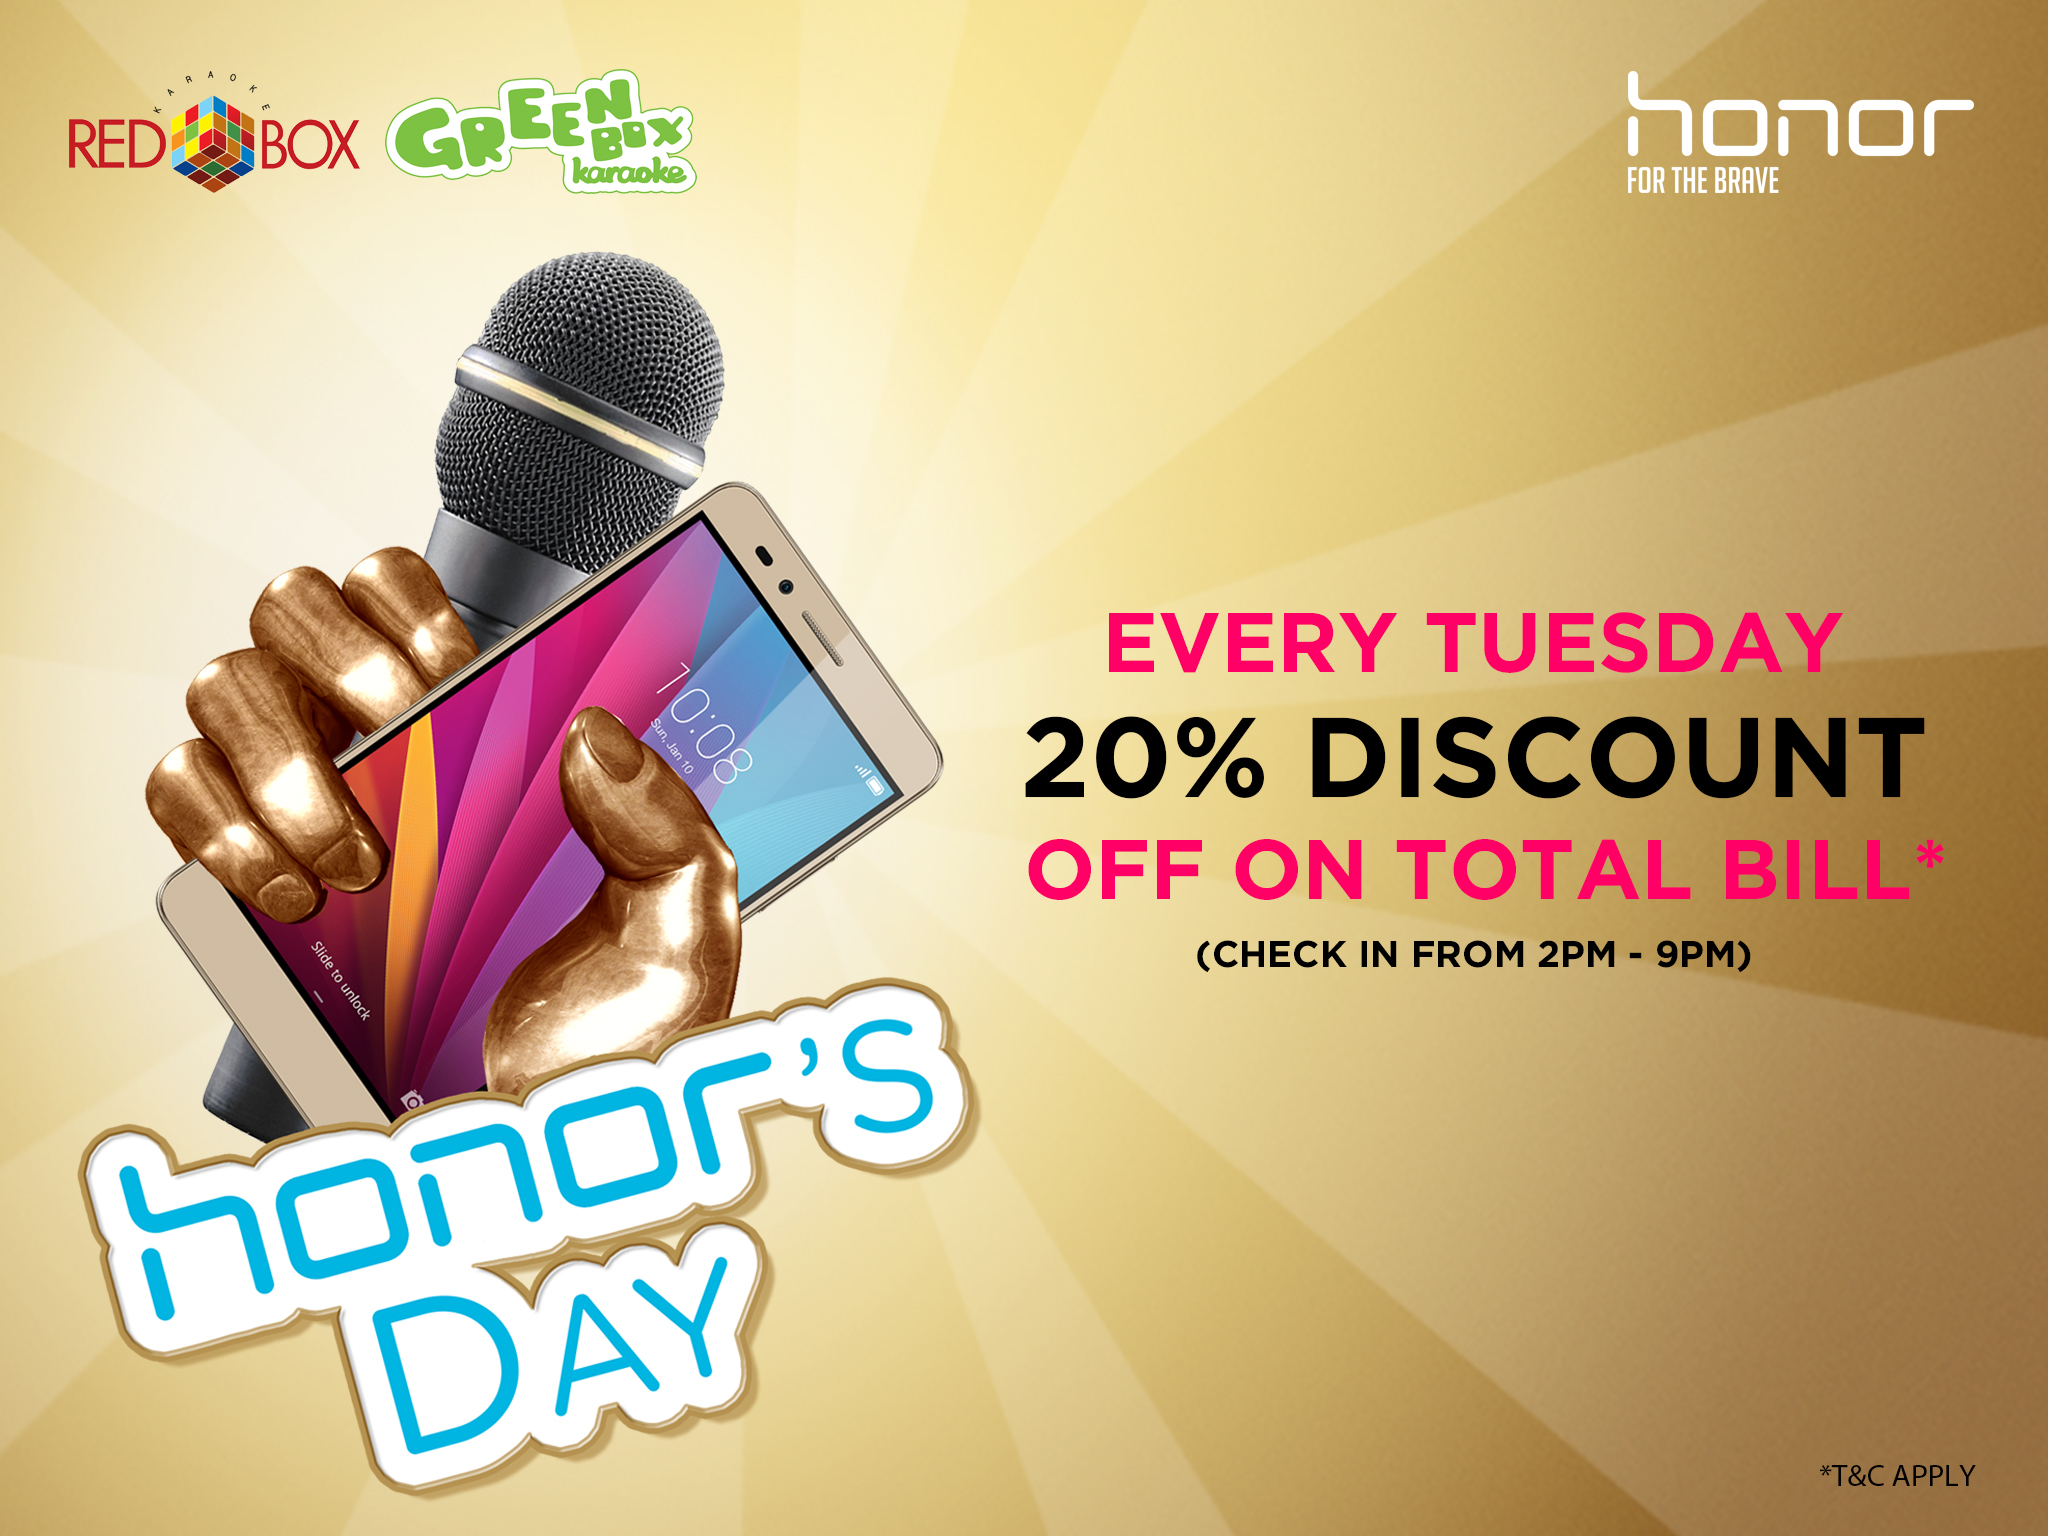 honor and  Redbox Malaysia Declare Every Tuesday as 'honor Day'